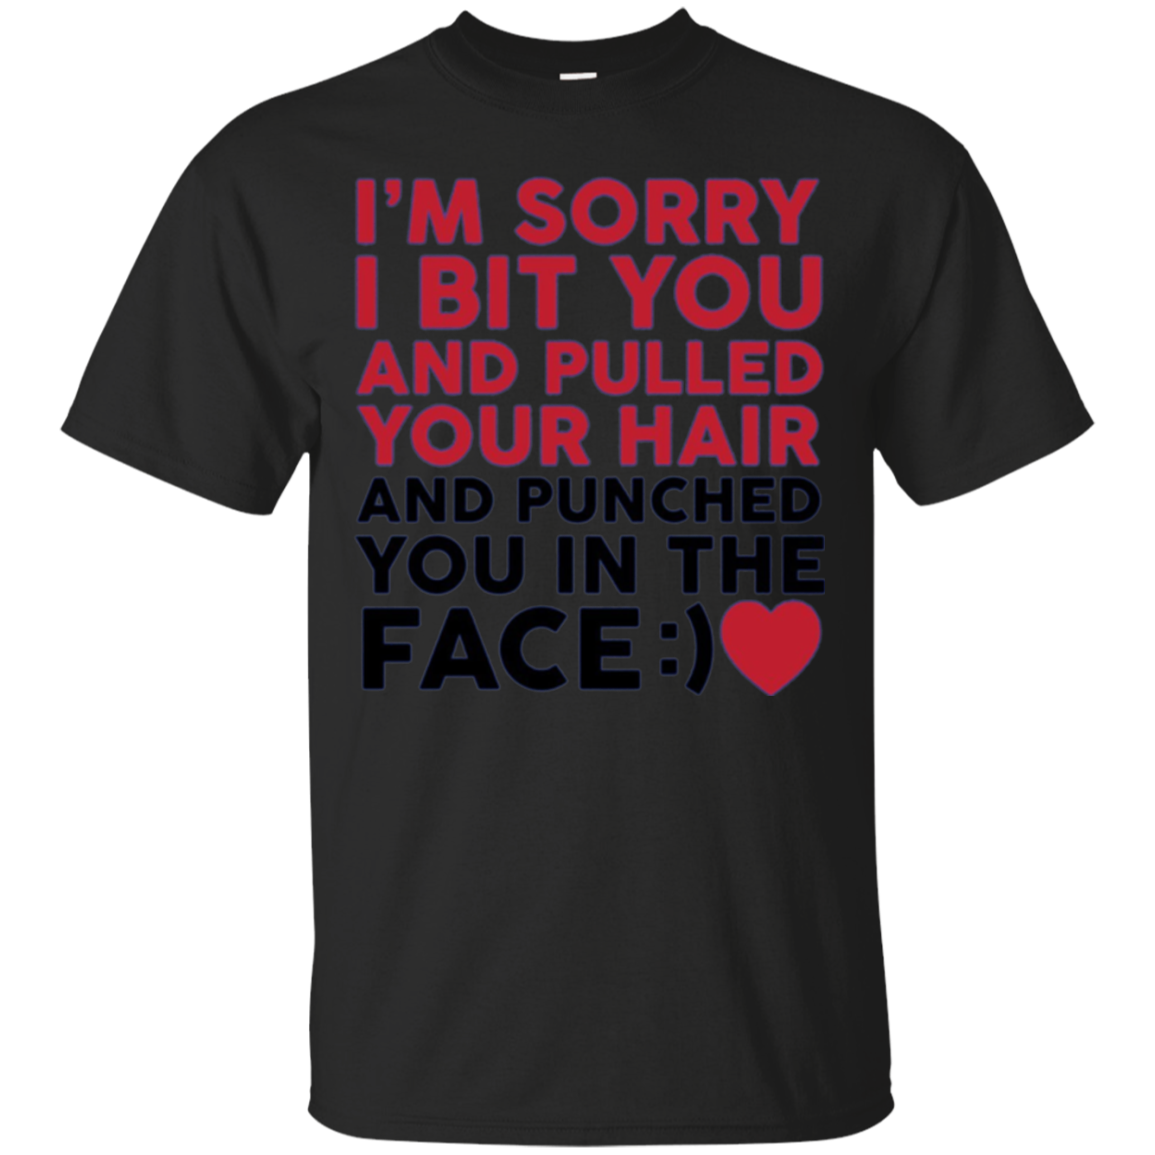 I'm Sorry I Bit You Pulled Your Hair and Punched You Tee